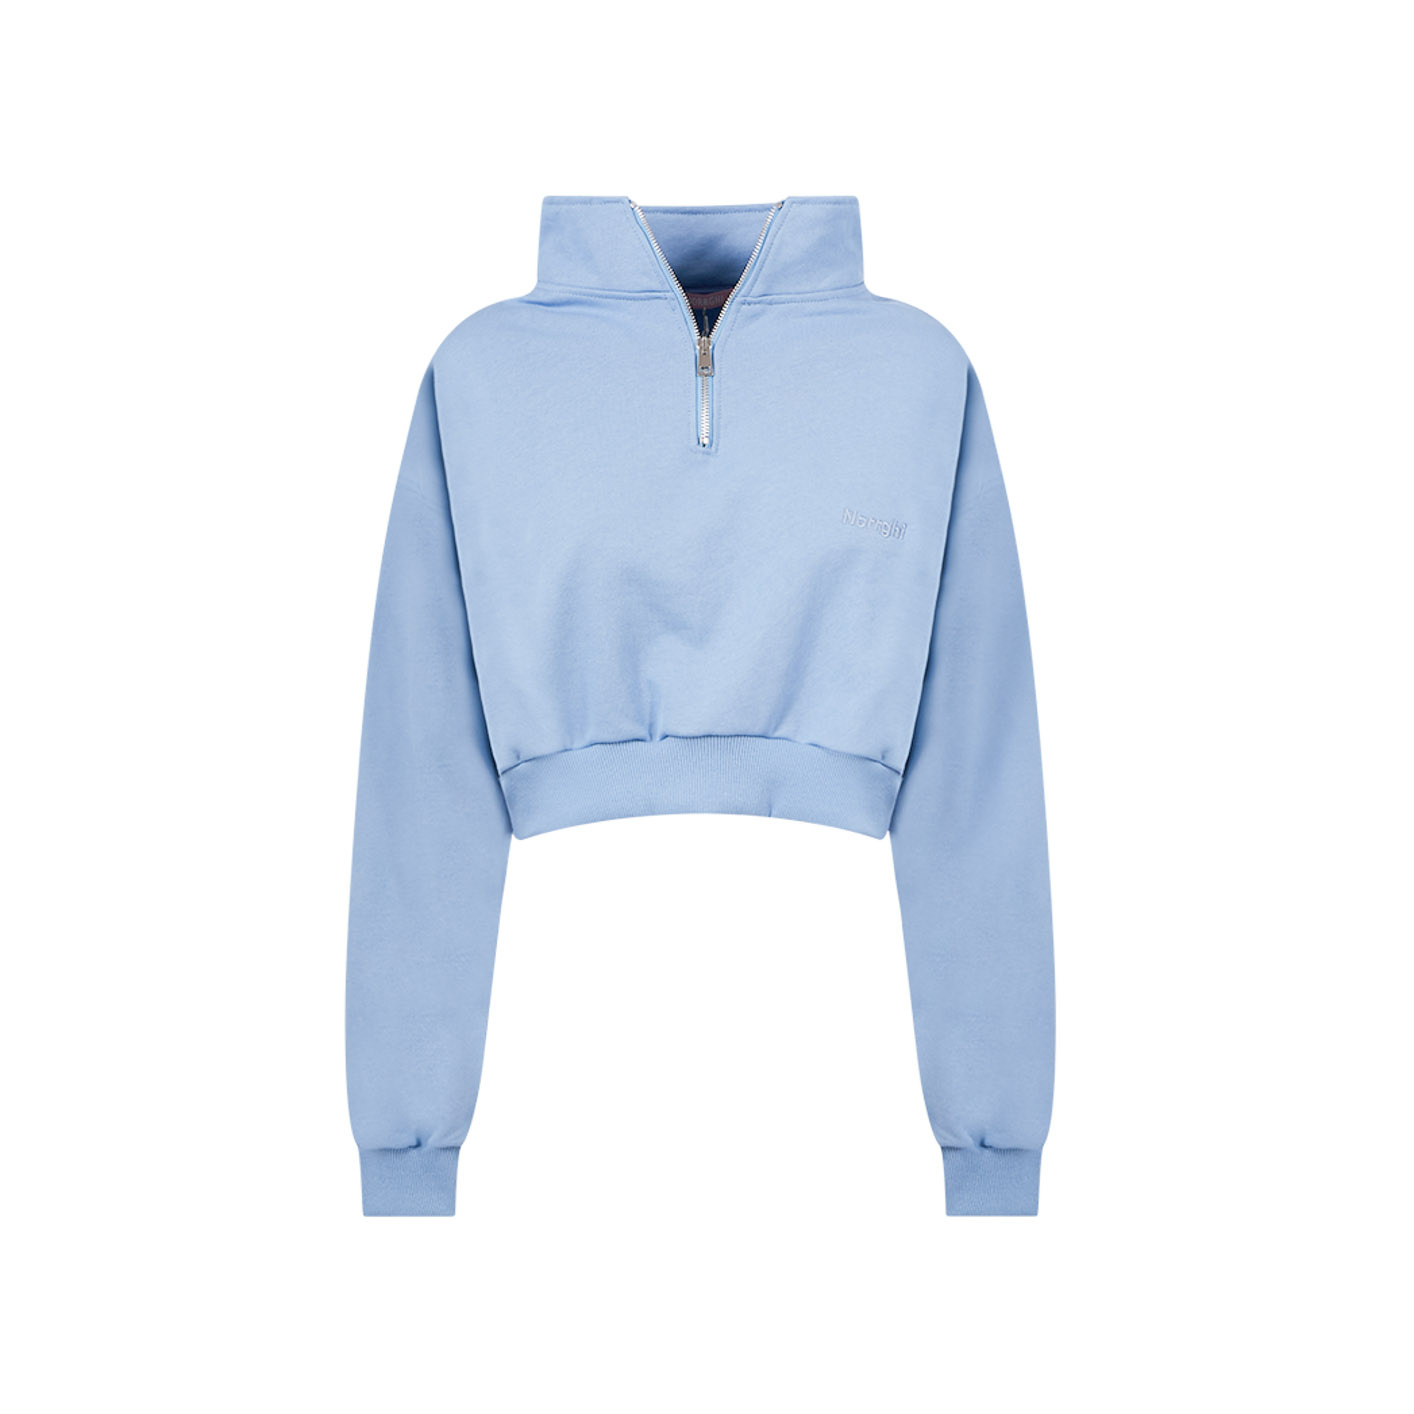 NORRGHI CROPPED SWEATER WITH ZIP